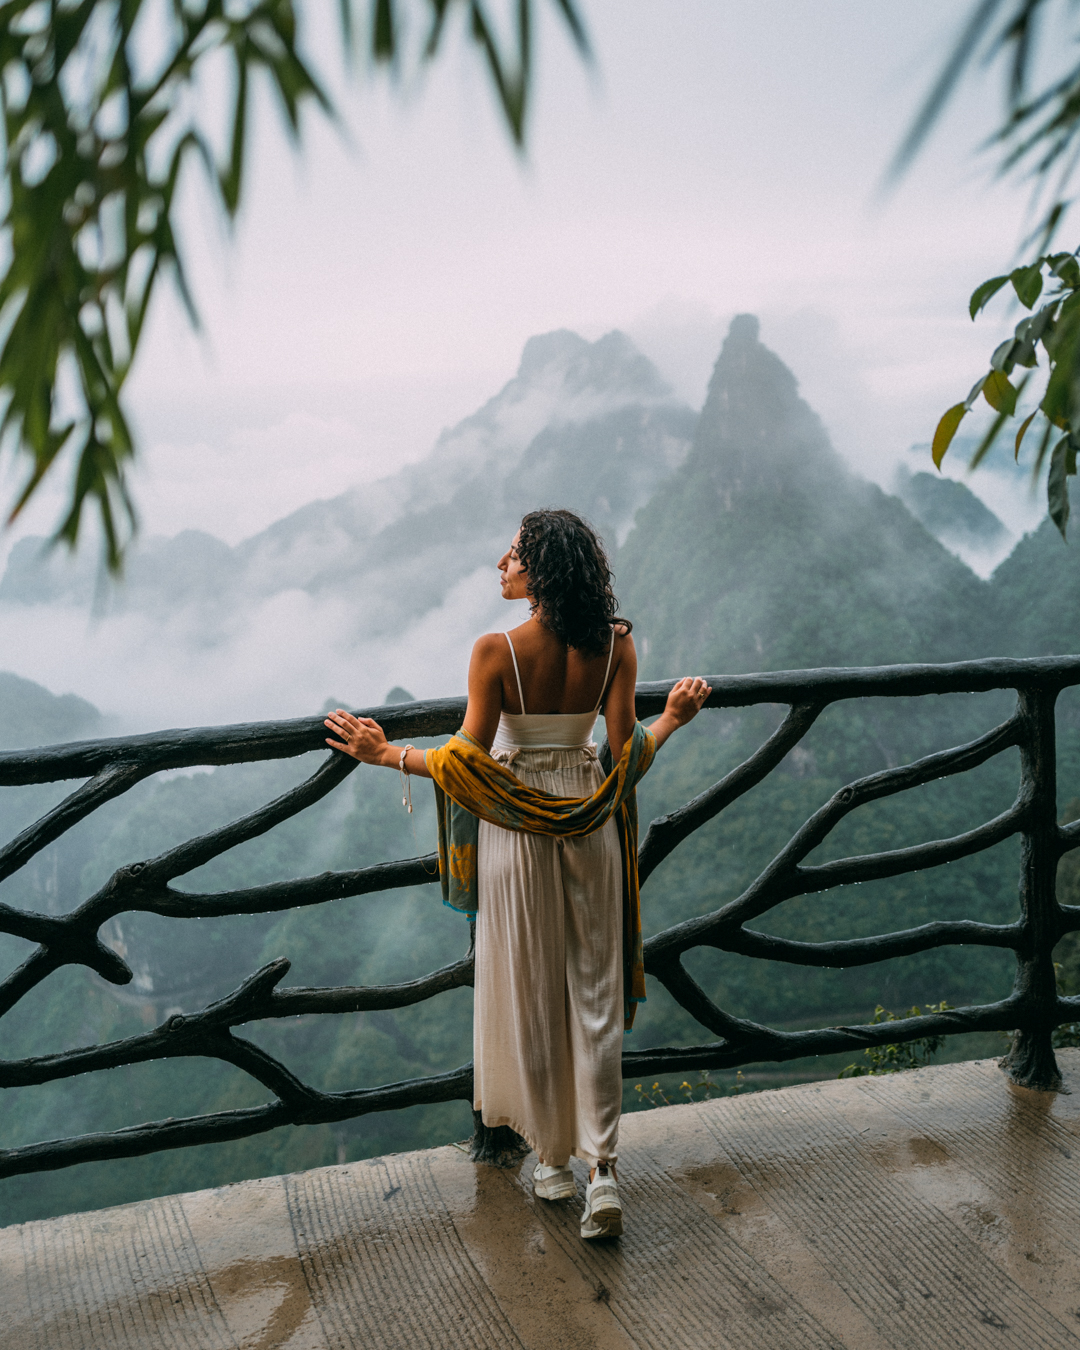 foggy mountains in the horizon with a women watching the view